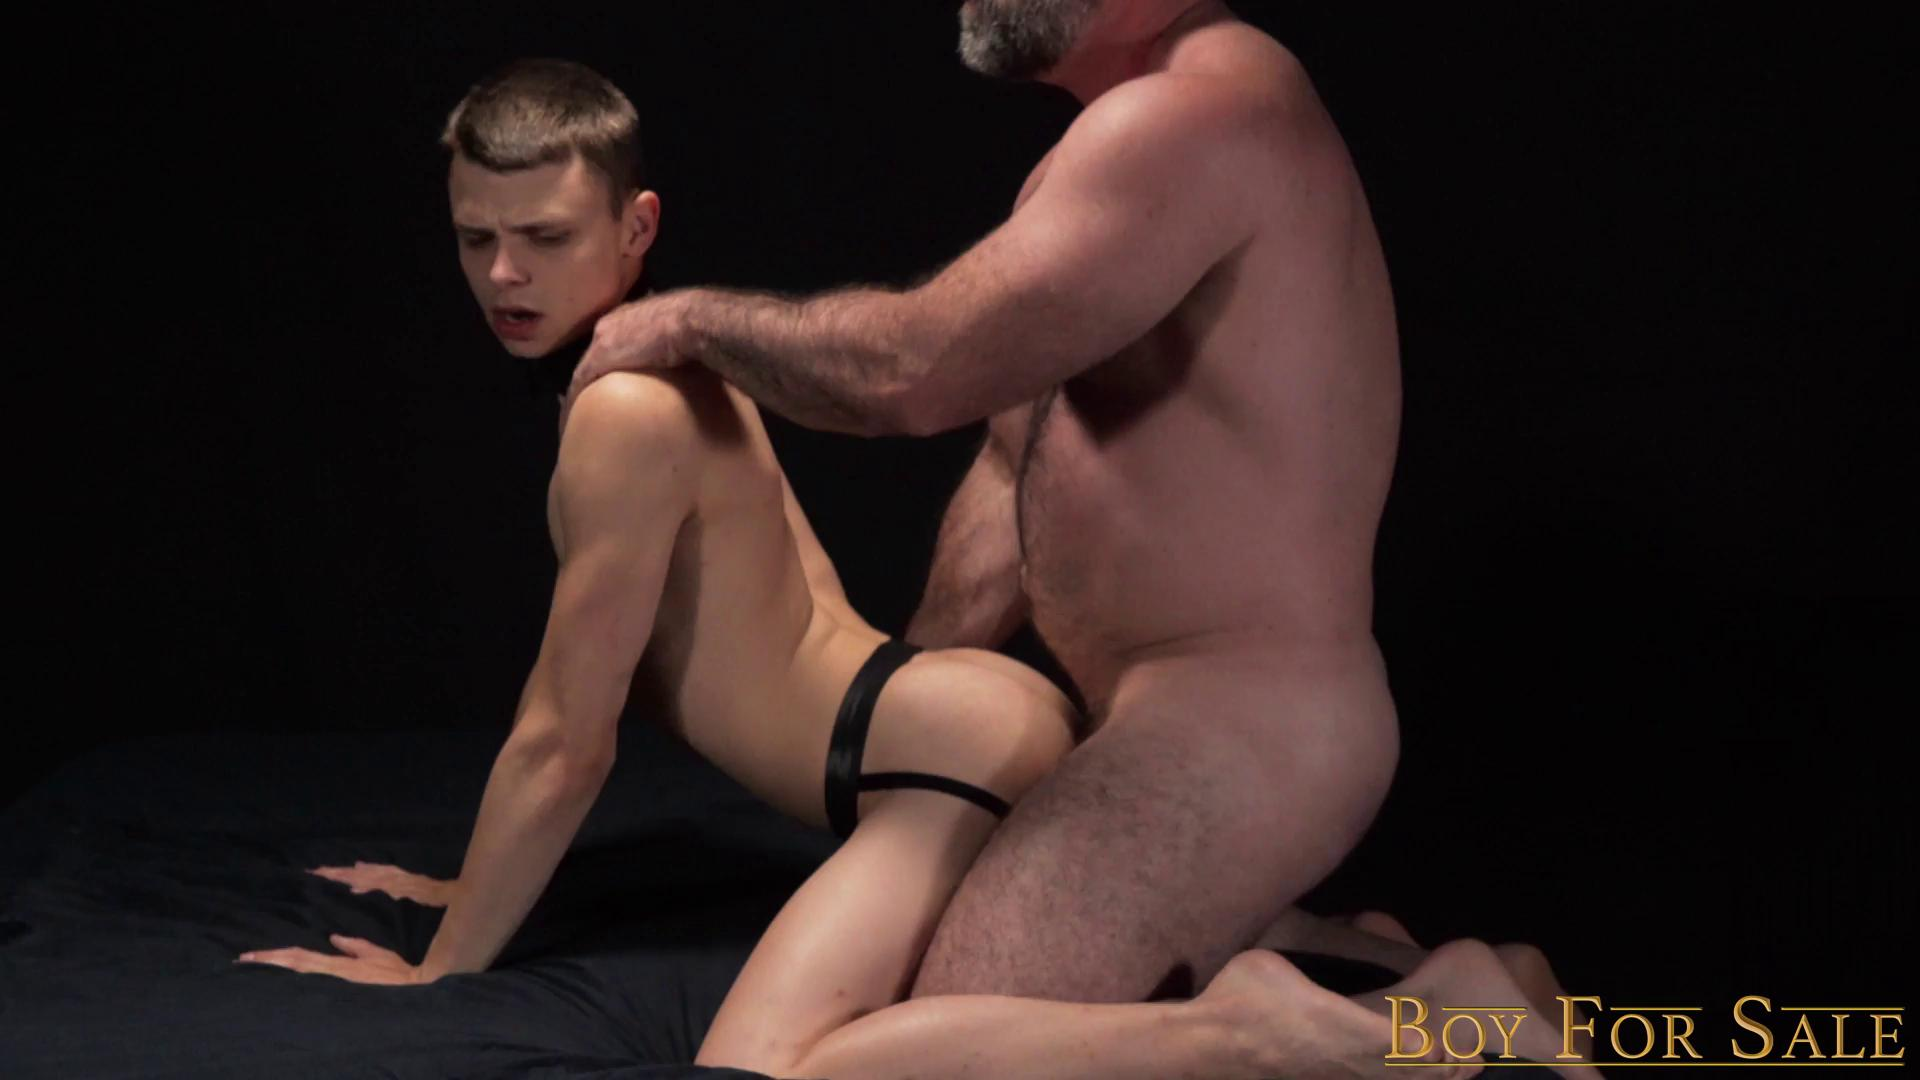 BoyForSale - Boy Austin - Chapter 12 - Slave Boy with Master Angus